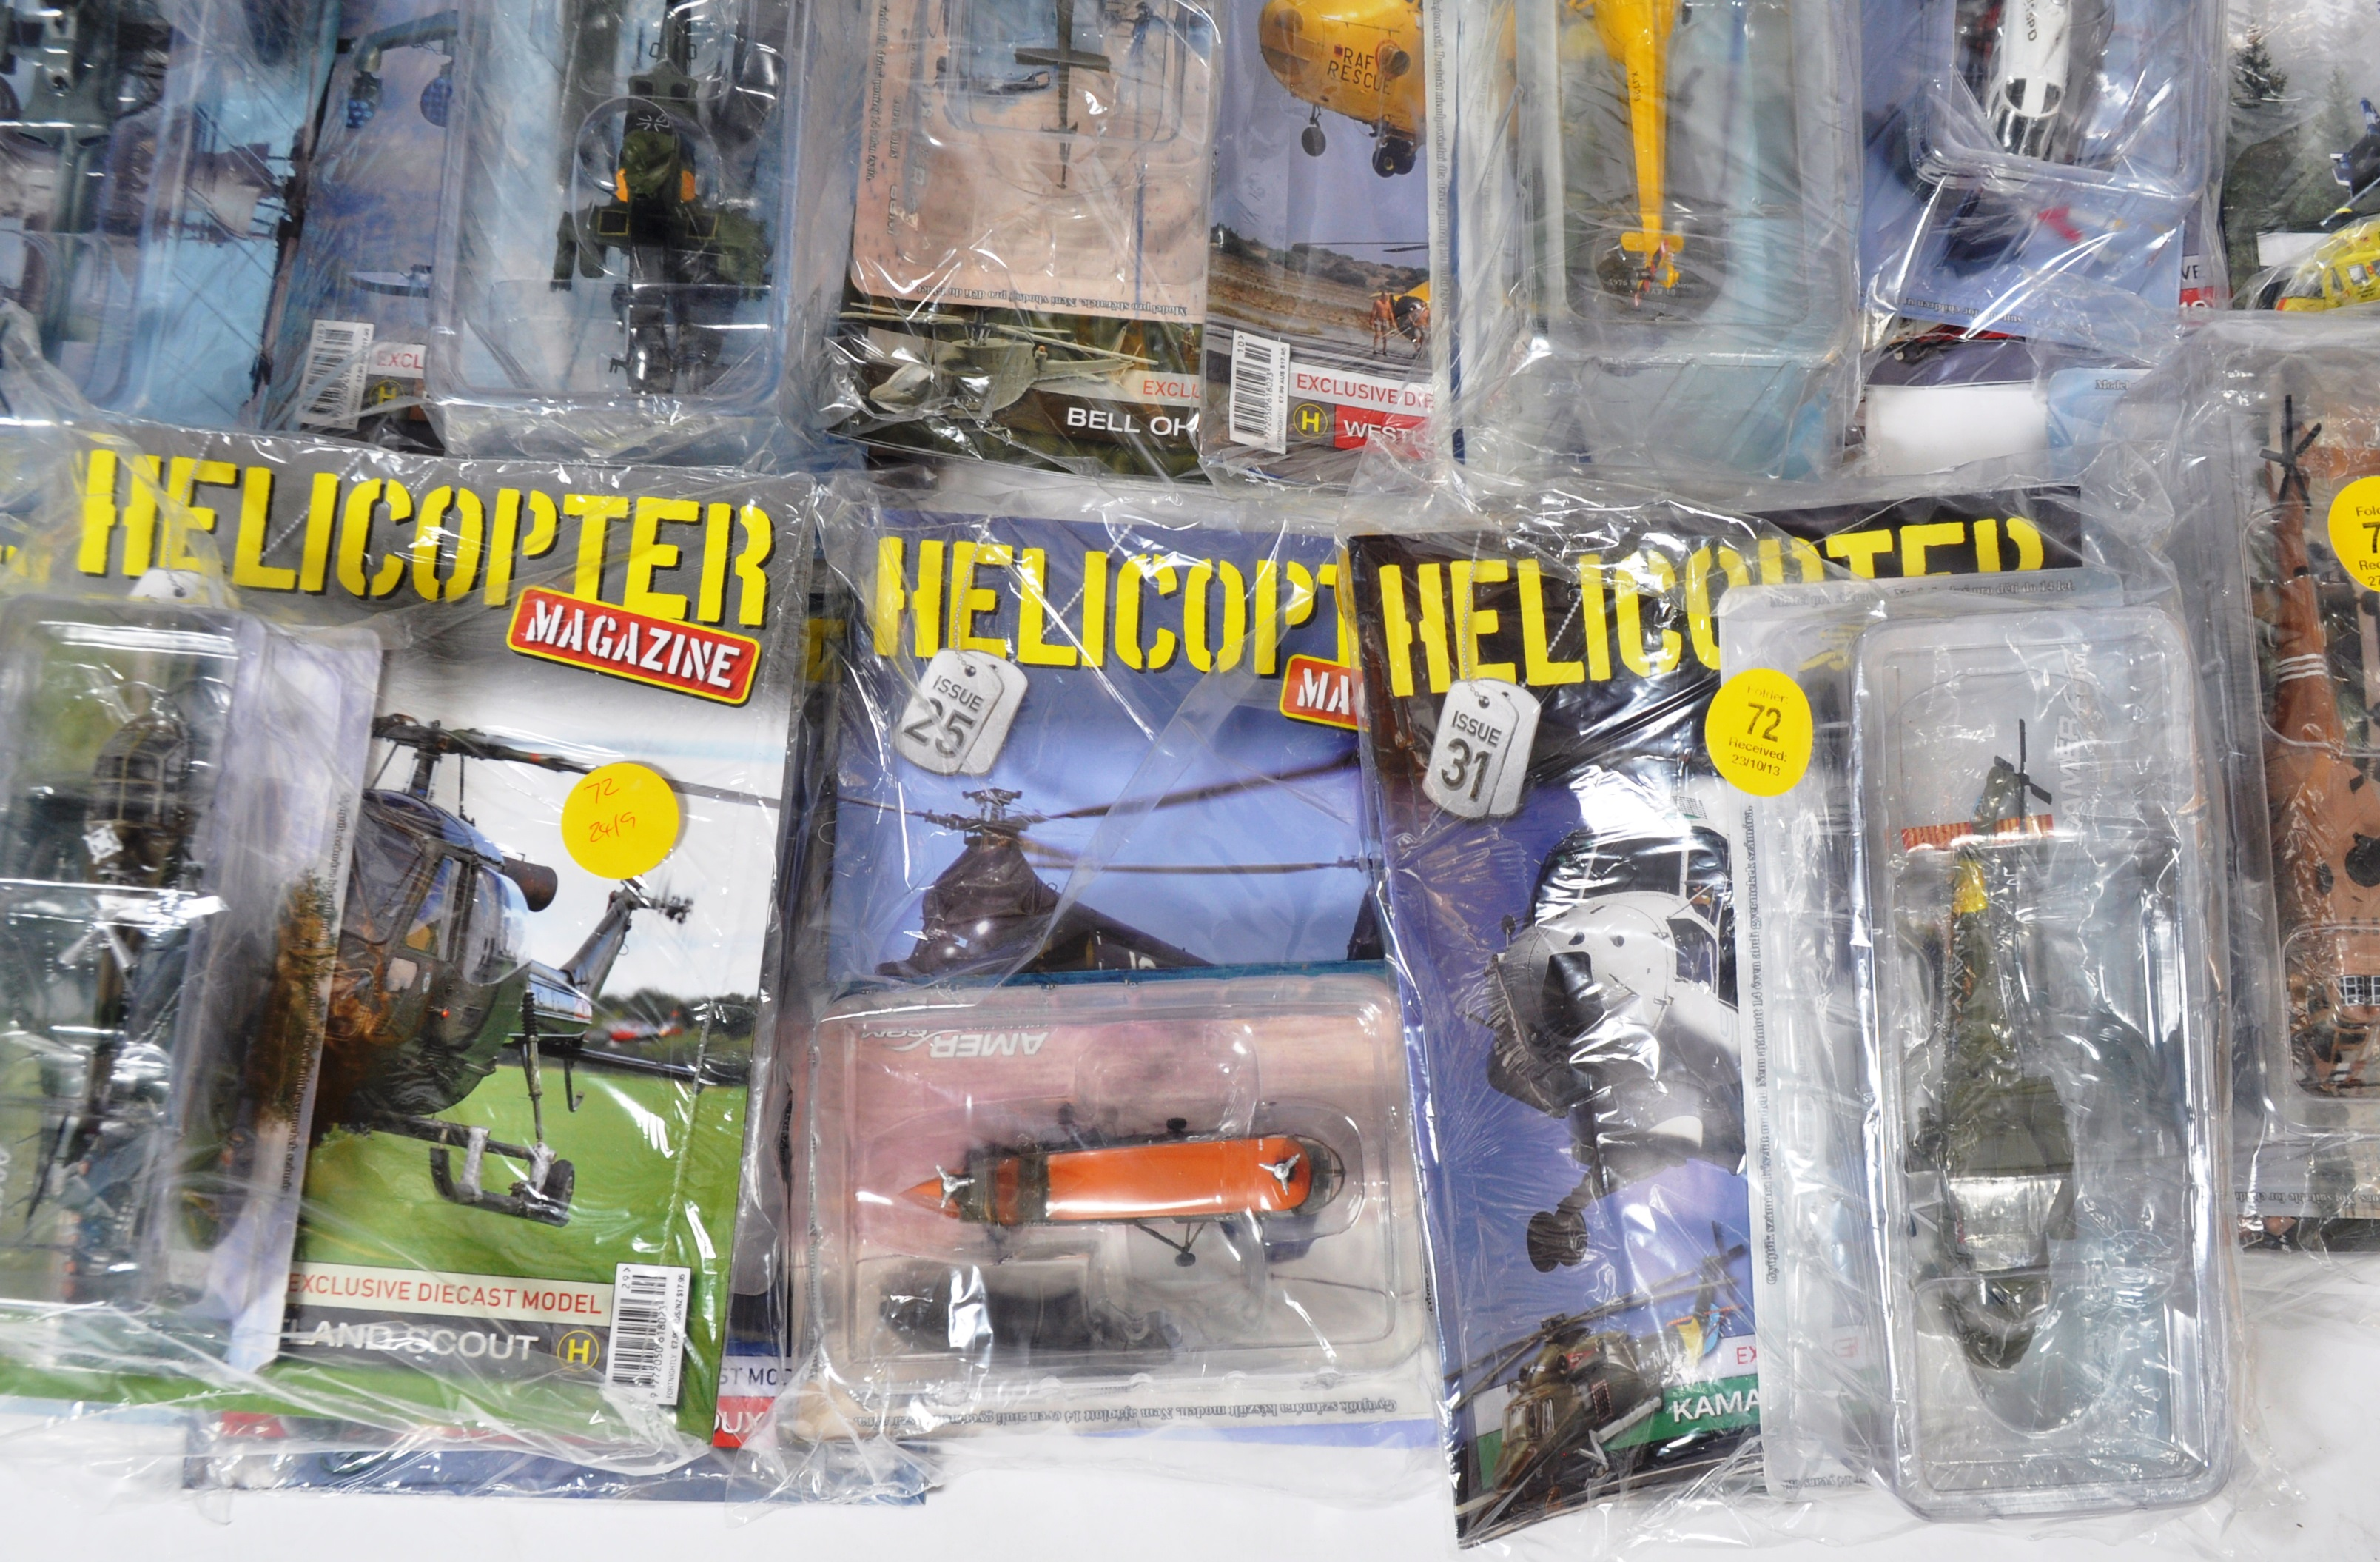 COLLECTION OF ASSORTED HELICOPTER DIECAST AND MAGAZINES - Image 8 of 8